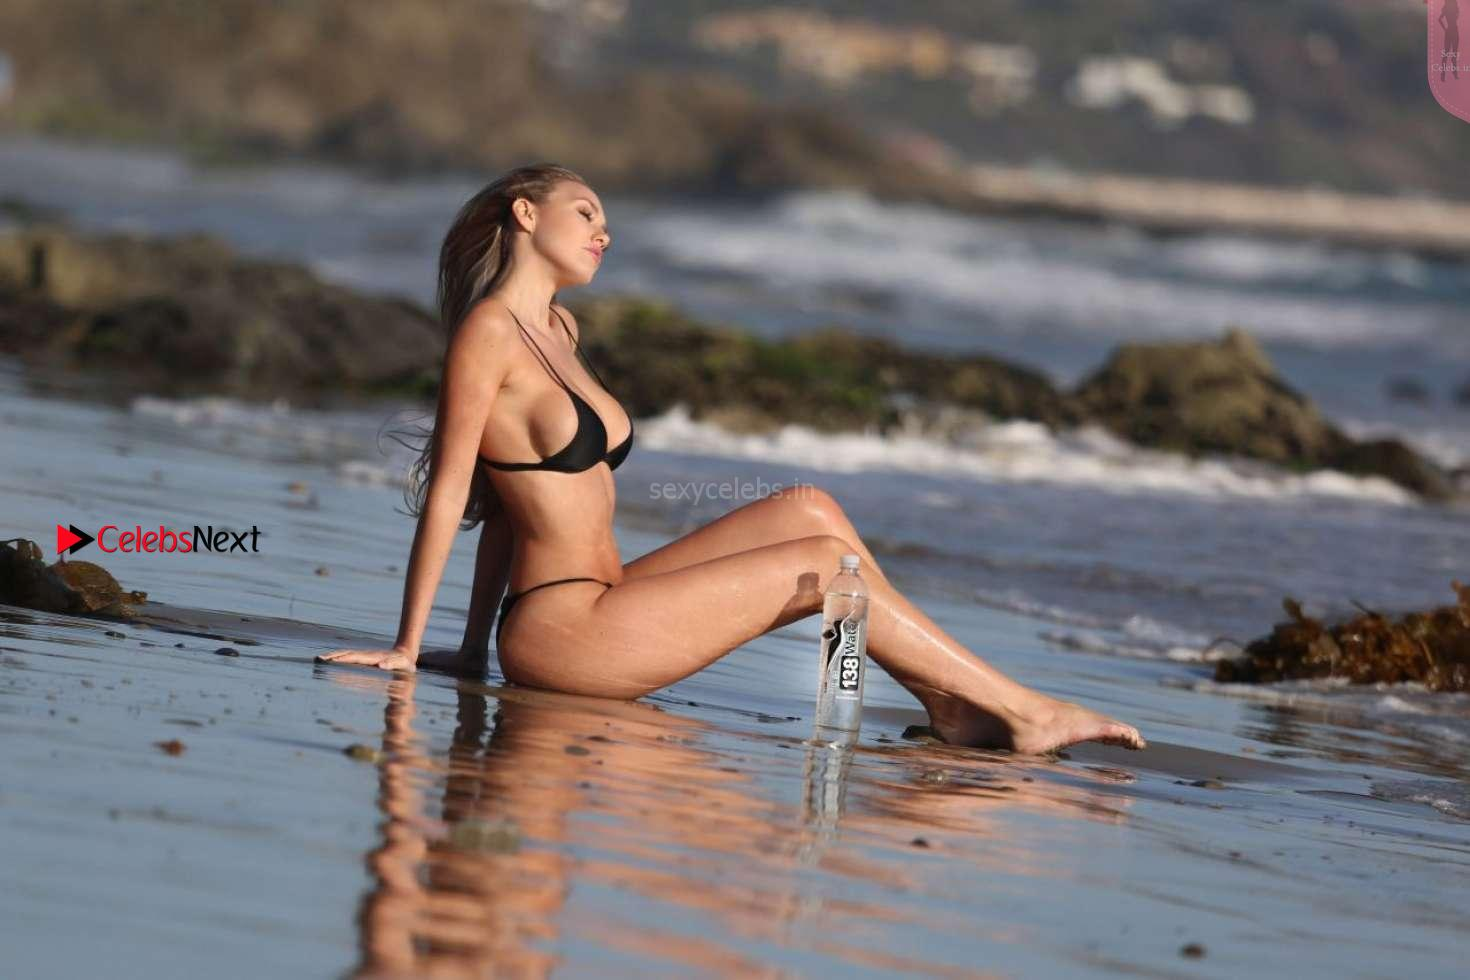 Jules Liesl in Wet Tiny Bikini Side Boob Full ass Sexy Cleavages Lovely Navel for 138 Water Bikini Babe